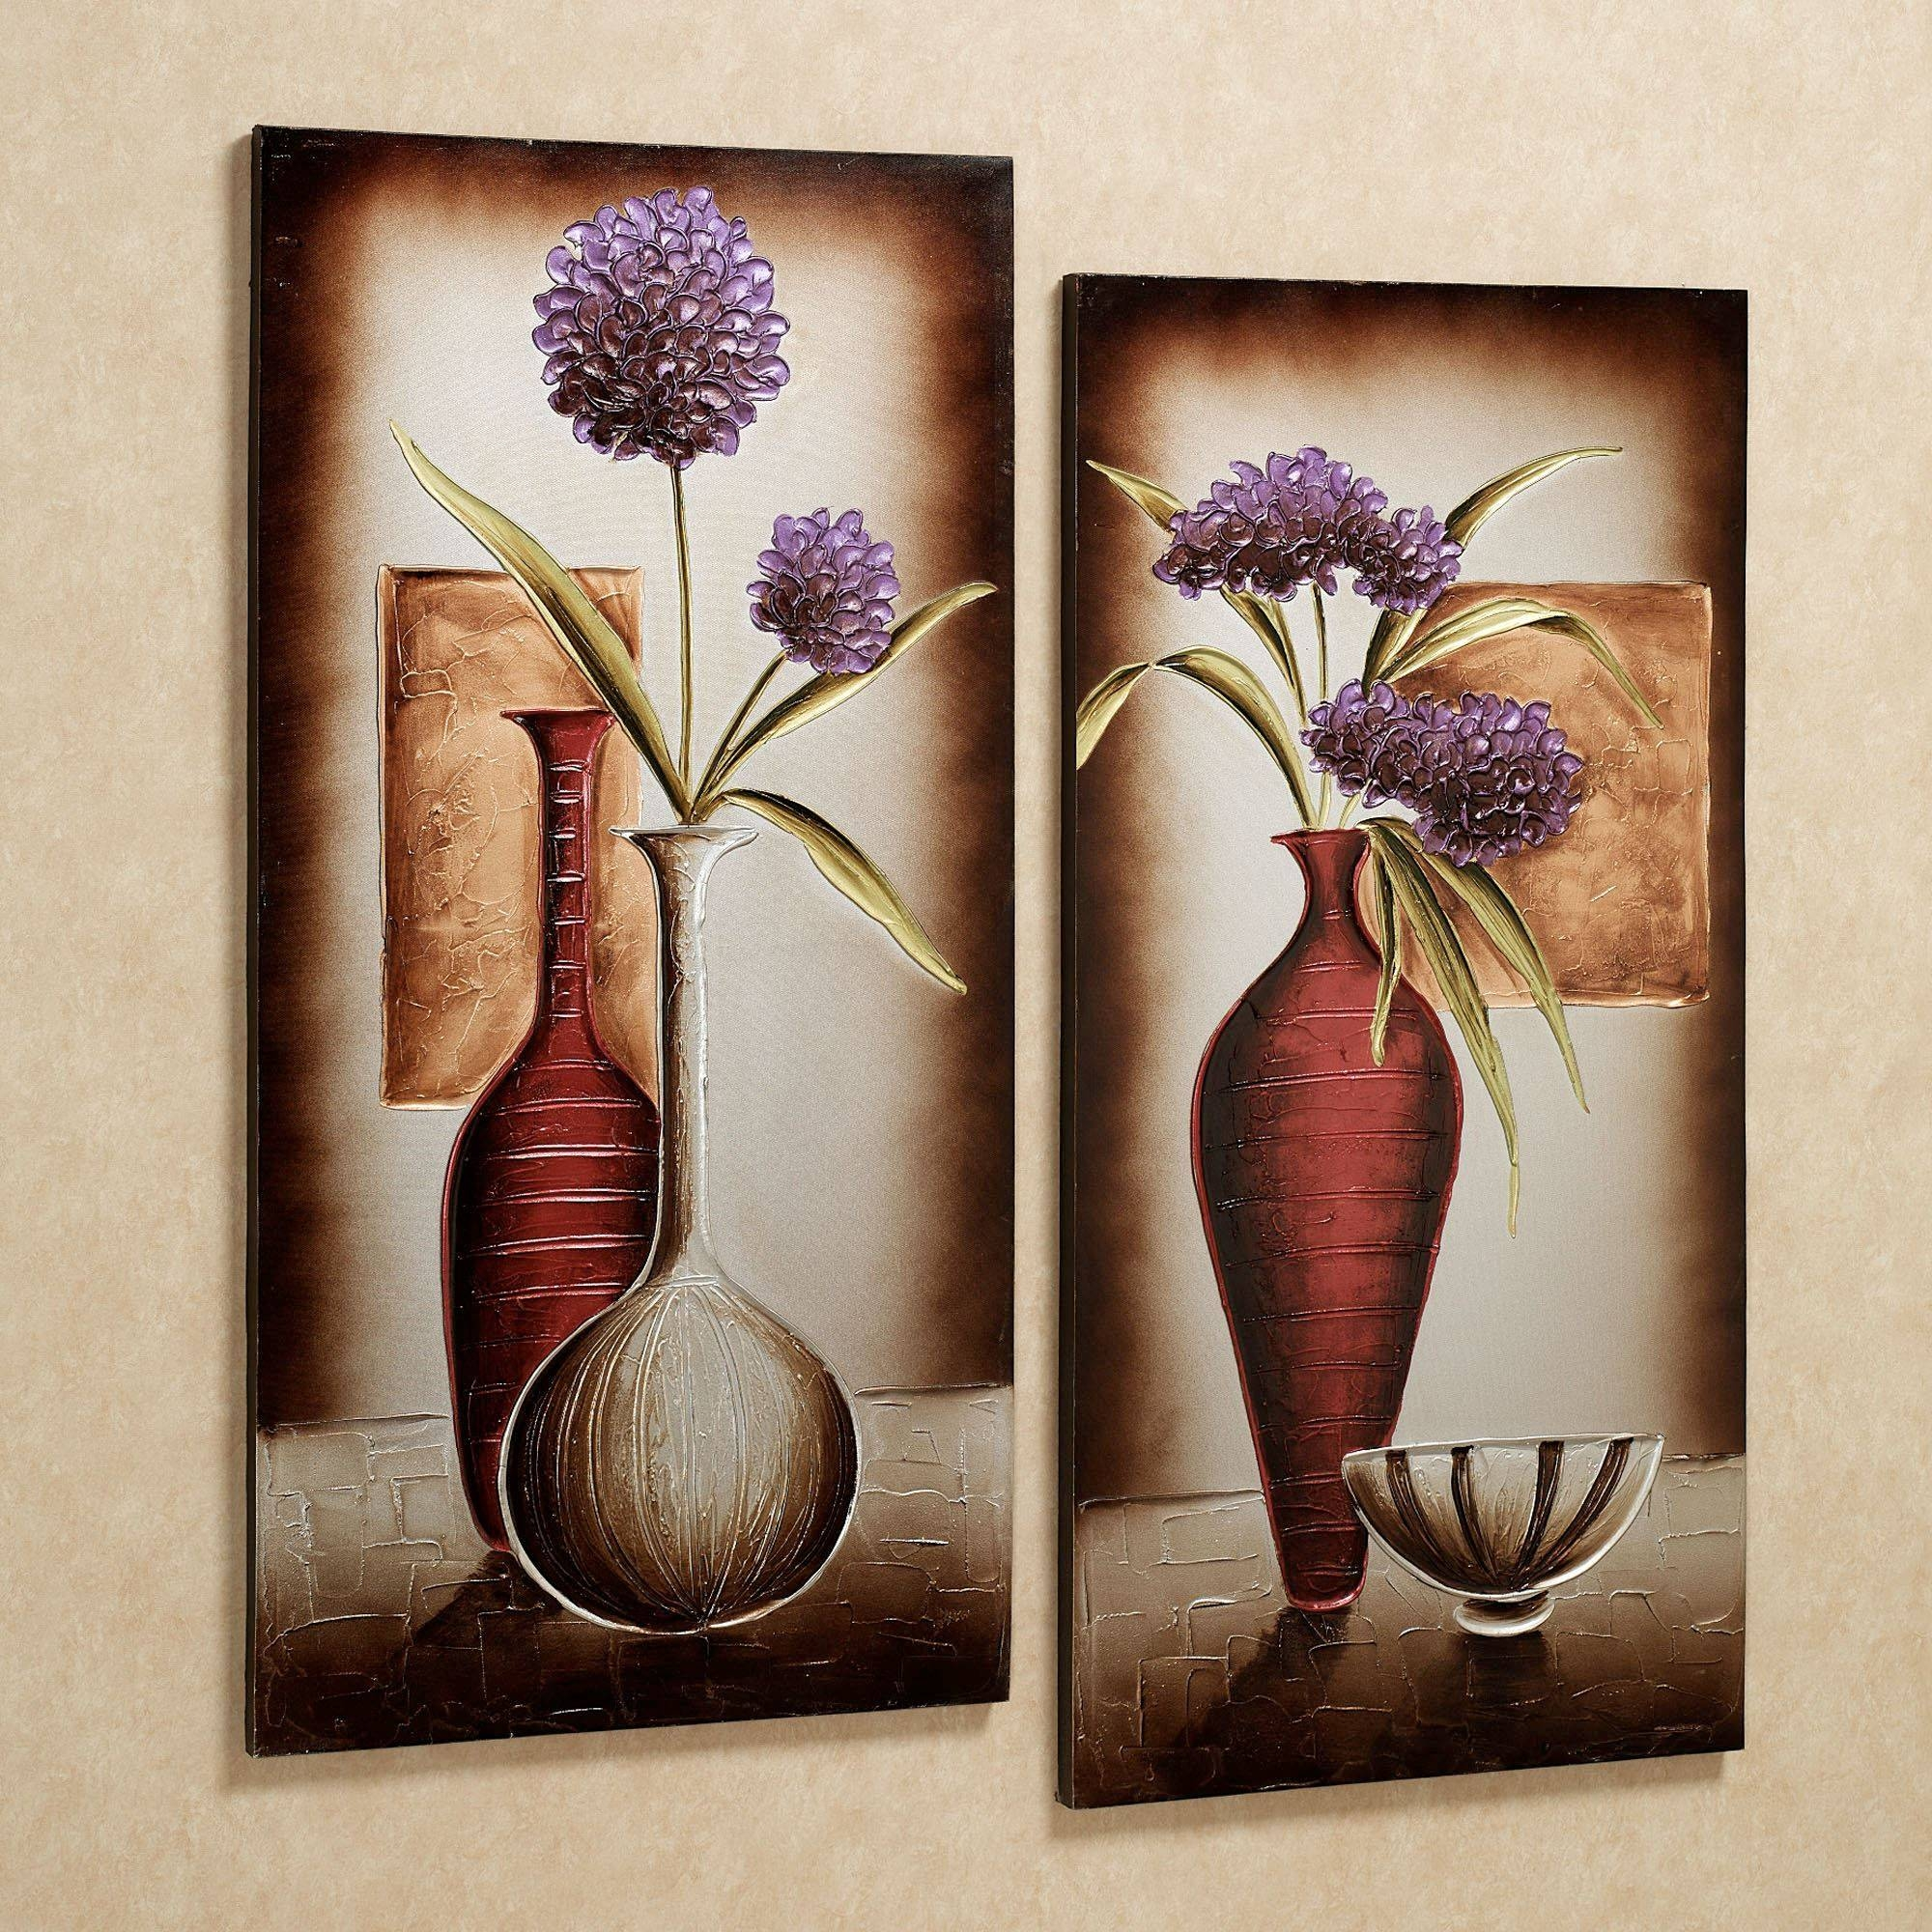 Floral Tranquility Canvas Wall Art Set Within Best And Newest Abstract Canvas Wall Art (View 18 of 20)